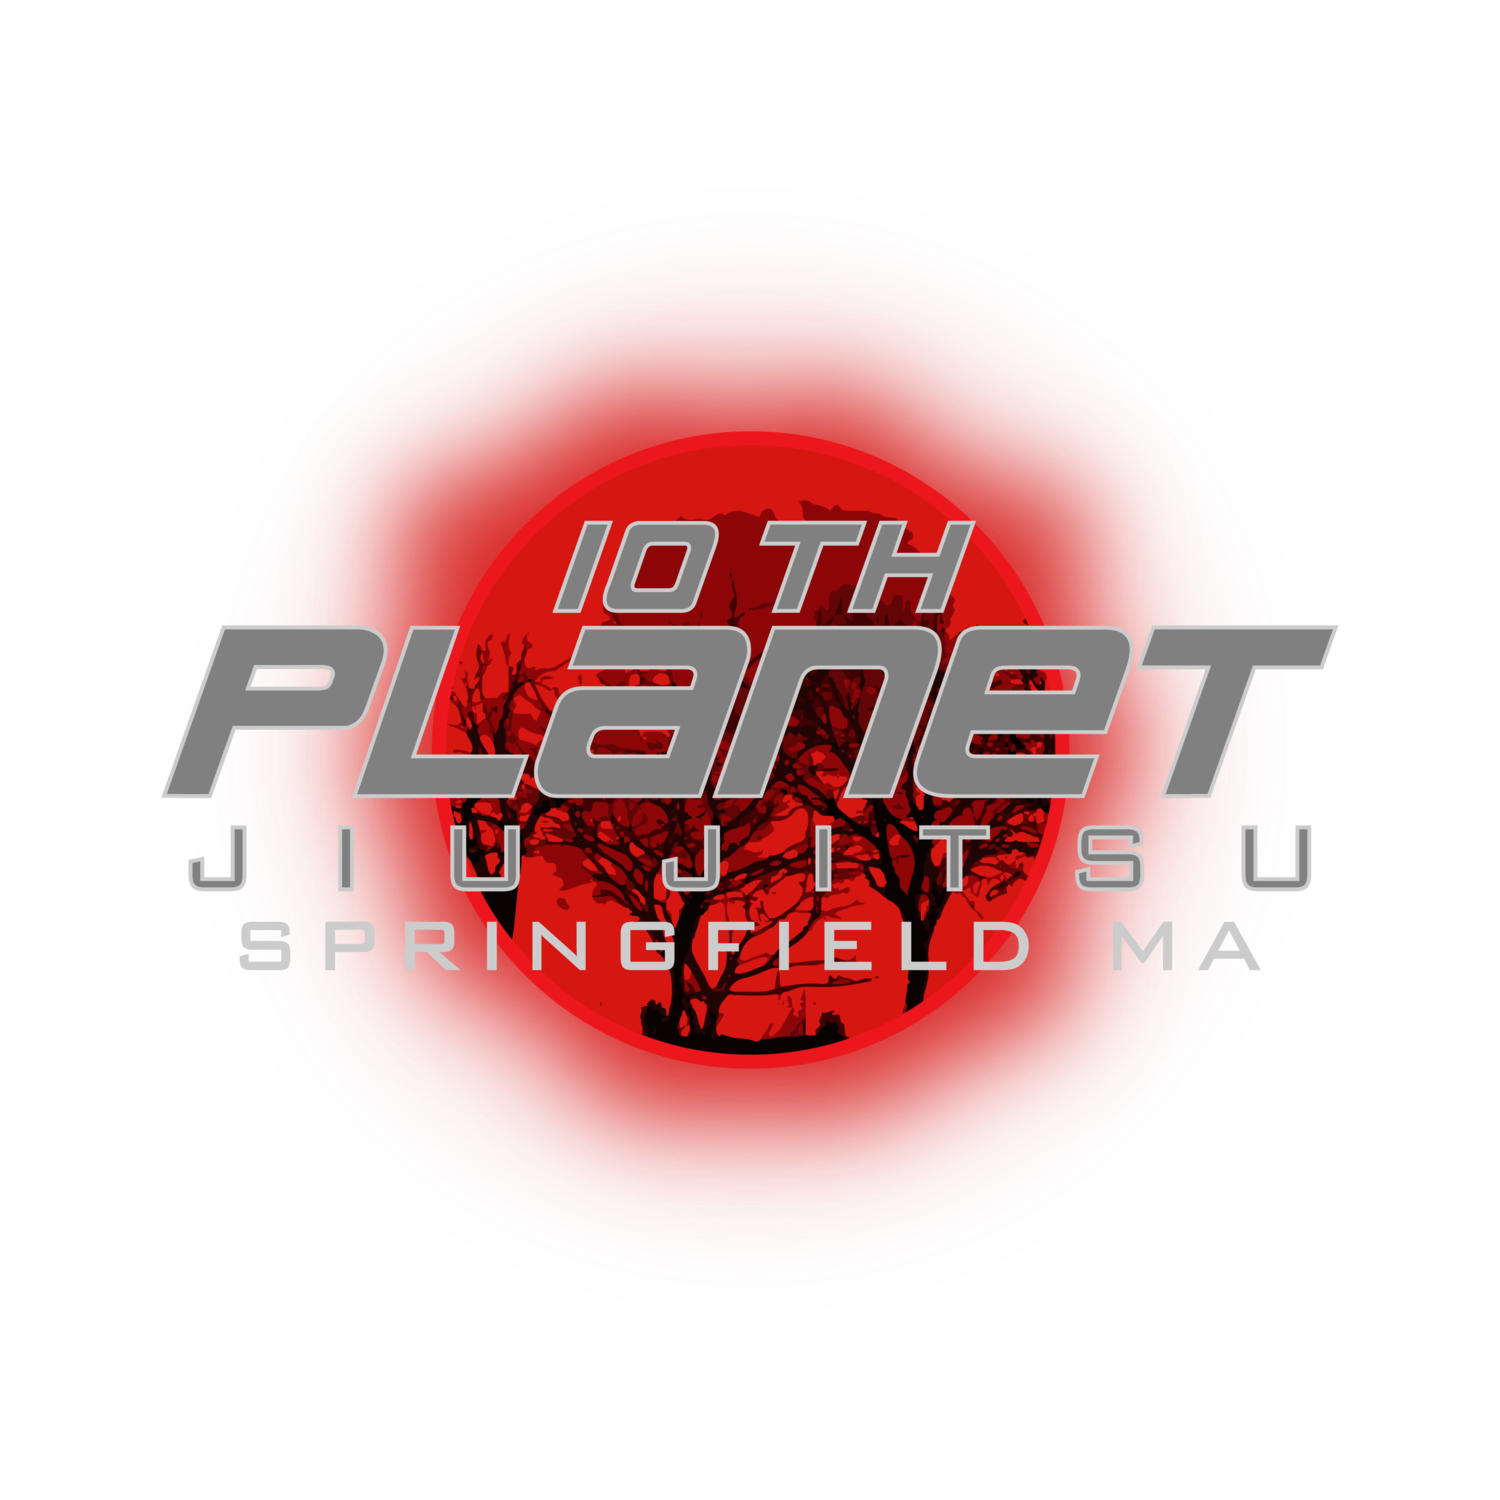 10th Planet Springfield MA